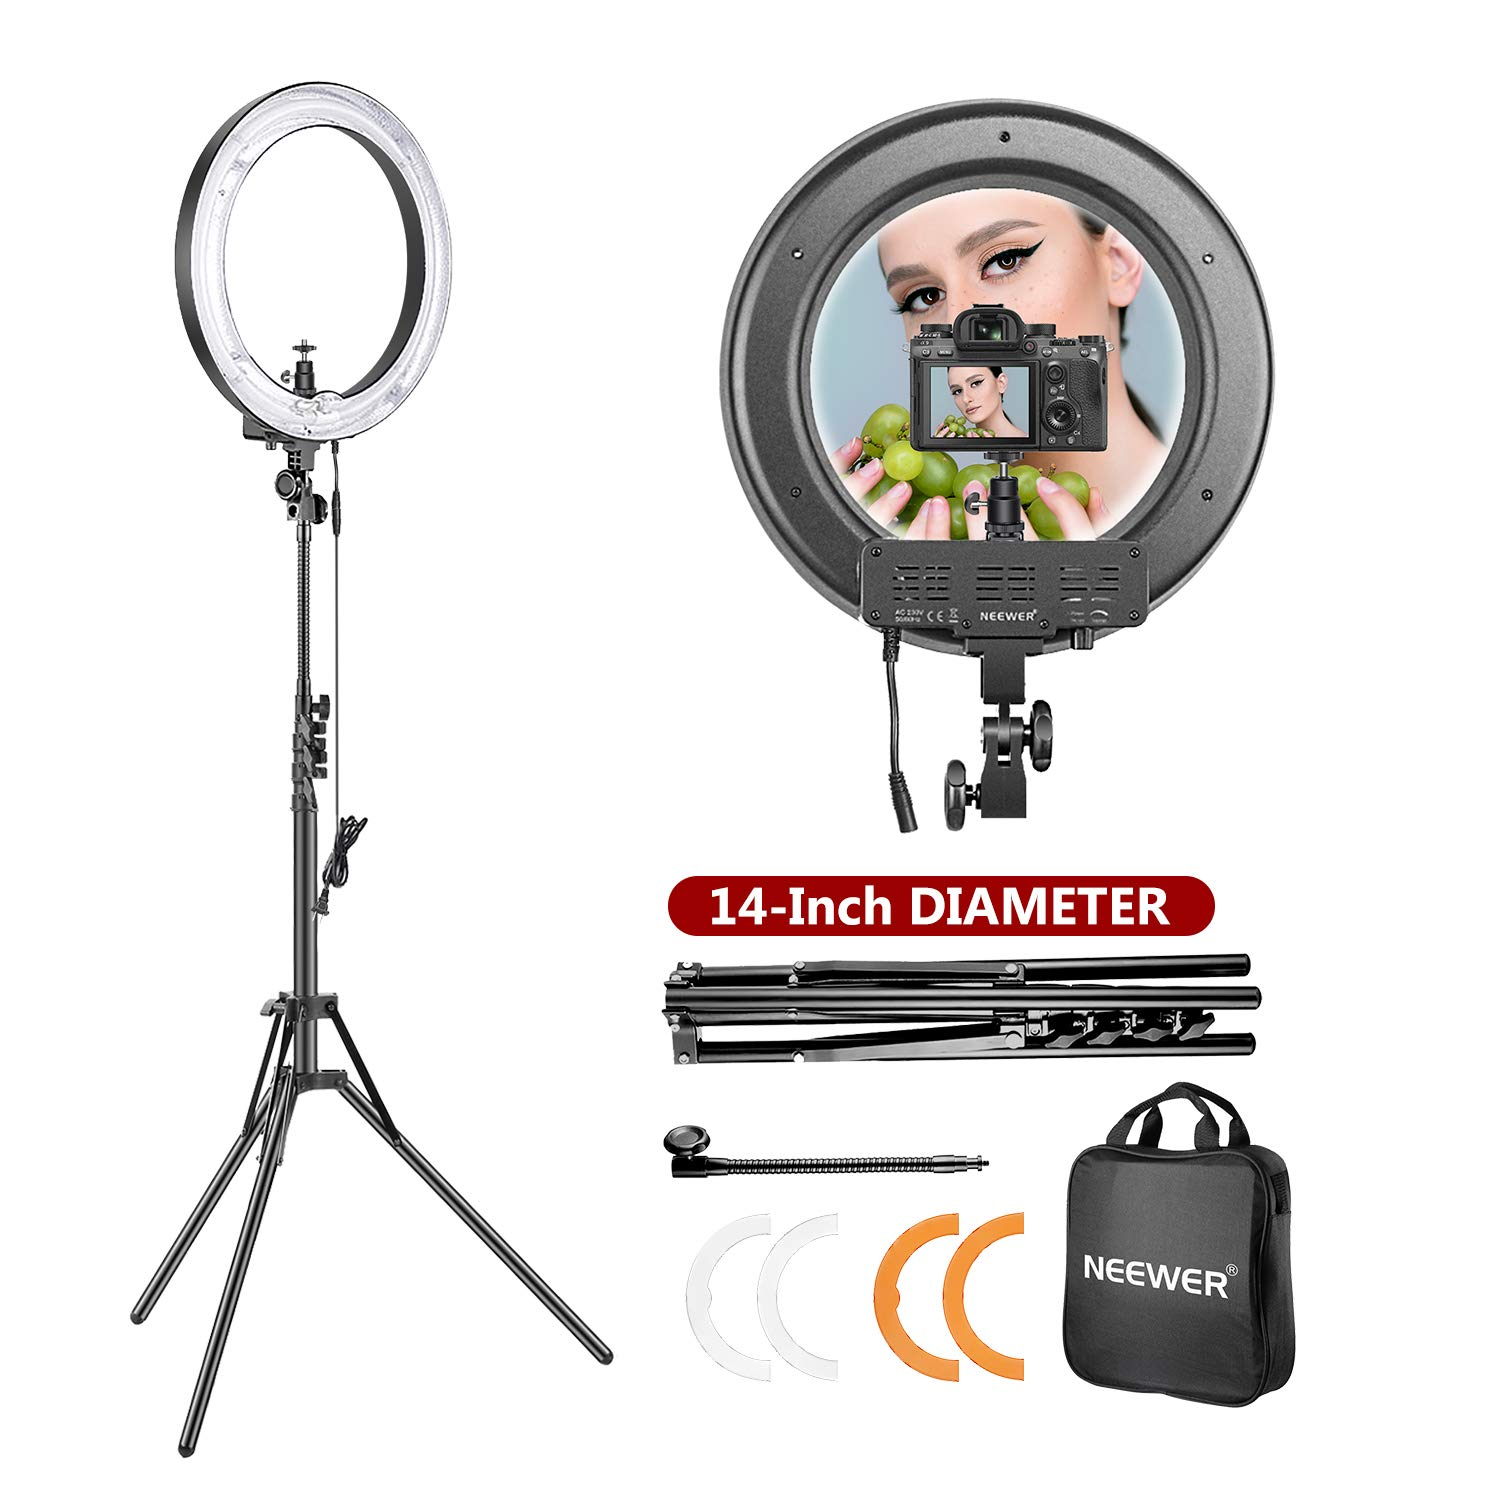 Mua Neewer 14-inch Outer 12-inch Inner Dimmable Ring Light Lighting Kit -  50W Fluorescent Continuous Ring Light, Light Stand, Ball Head,Filter for  Portrait Makeup Photography YouTube Studio Video Shooting trên Amazon Mỹ